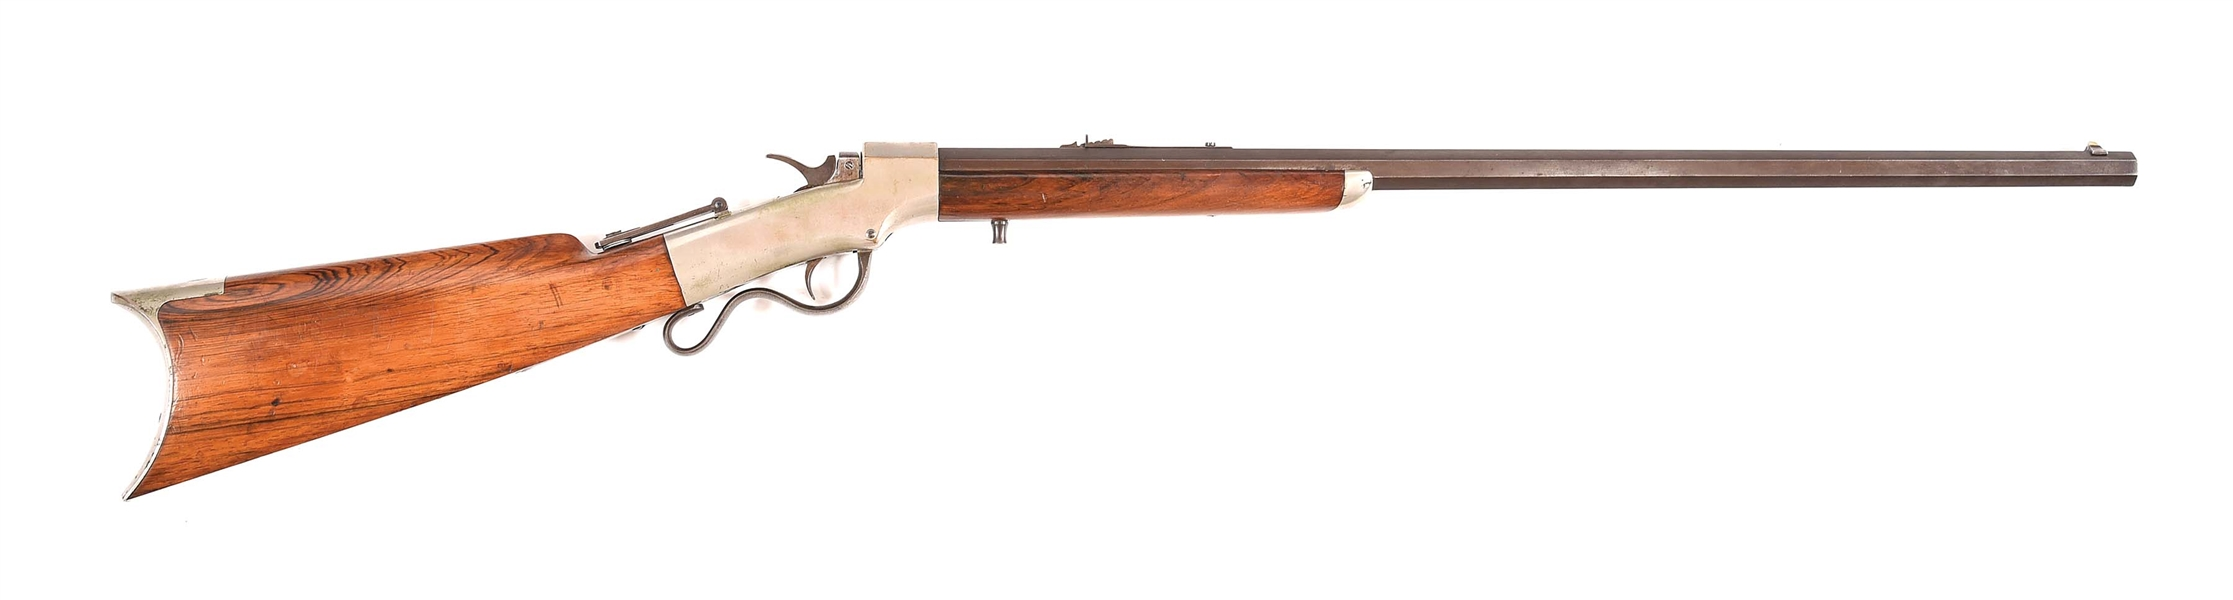 (A) EARLY MARLIN BALLARD SINGLE SHOT SPORTING RIFLE